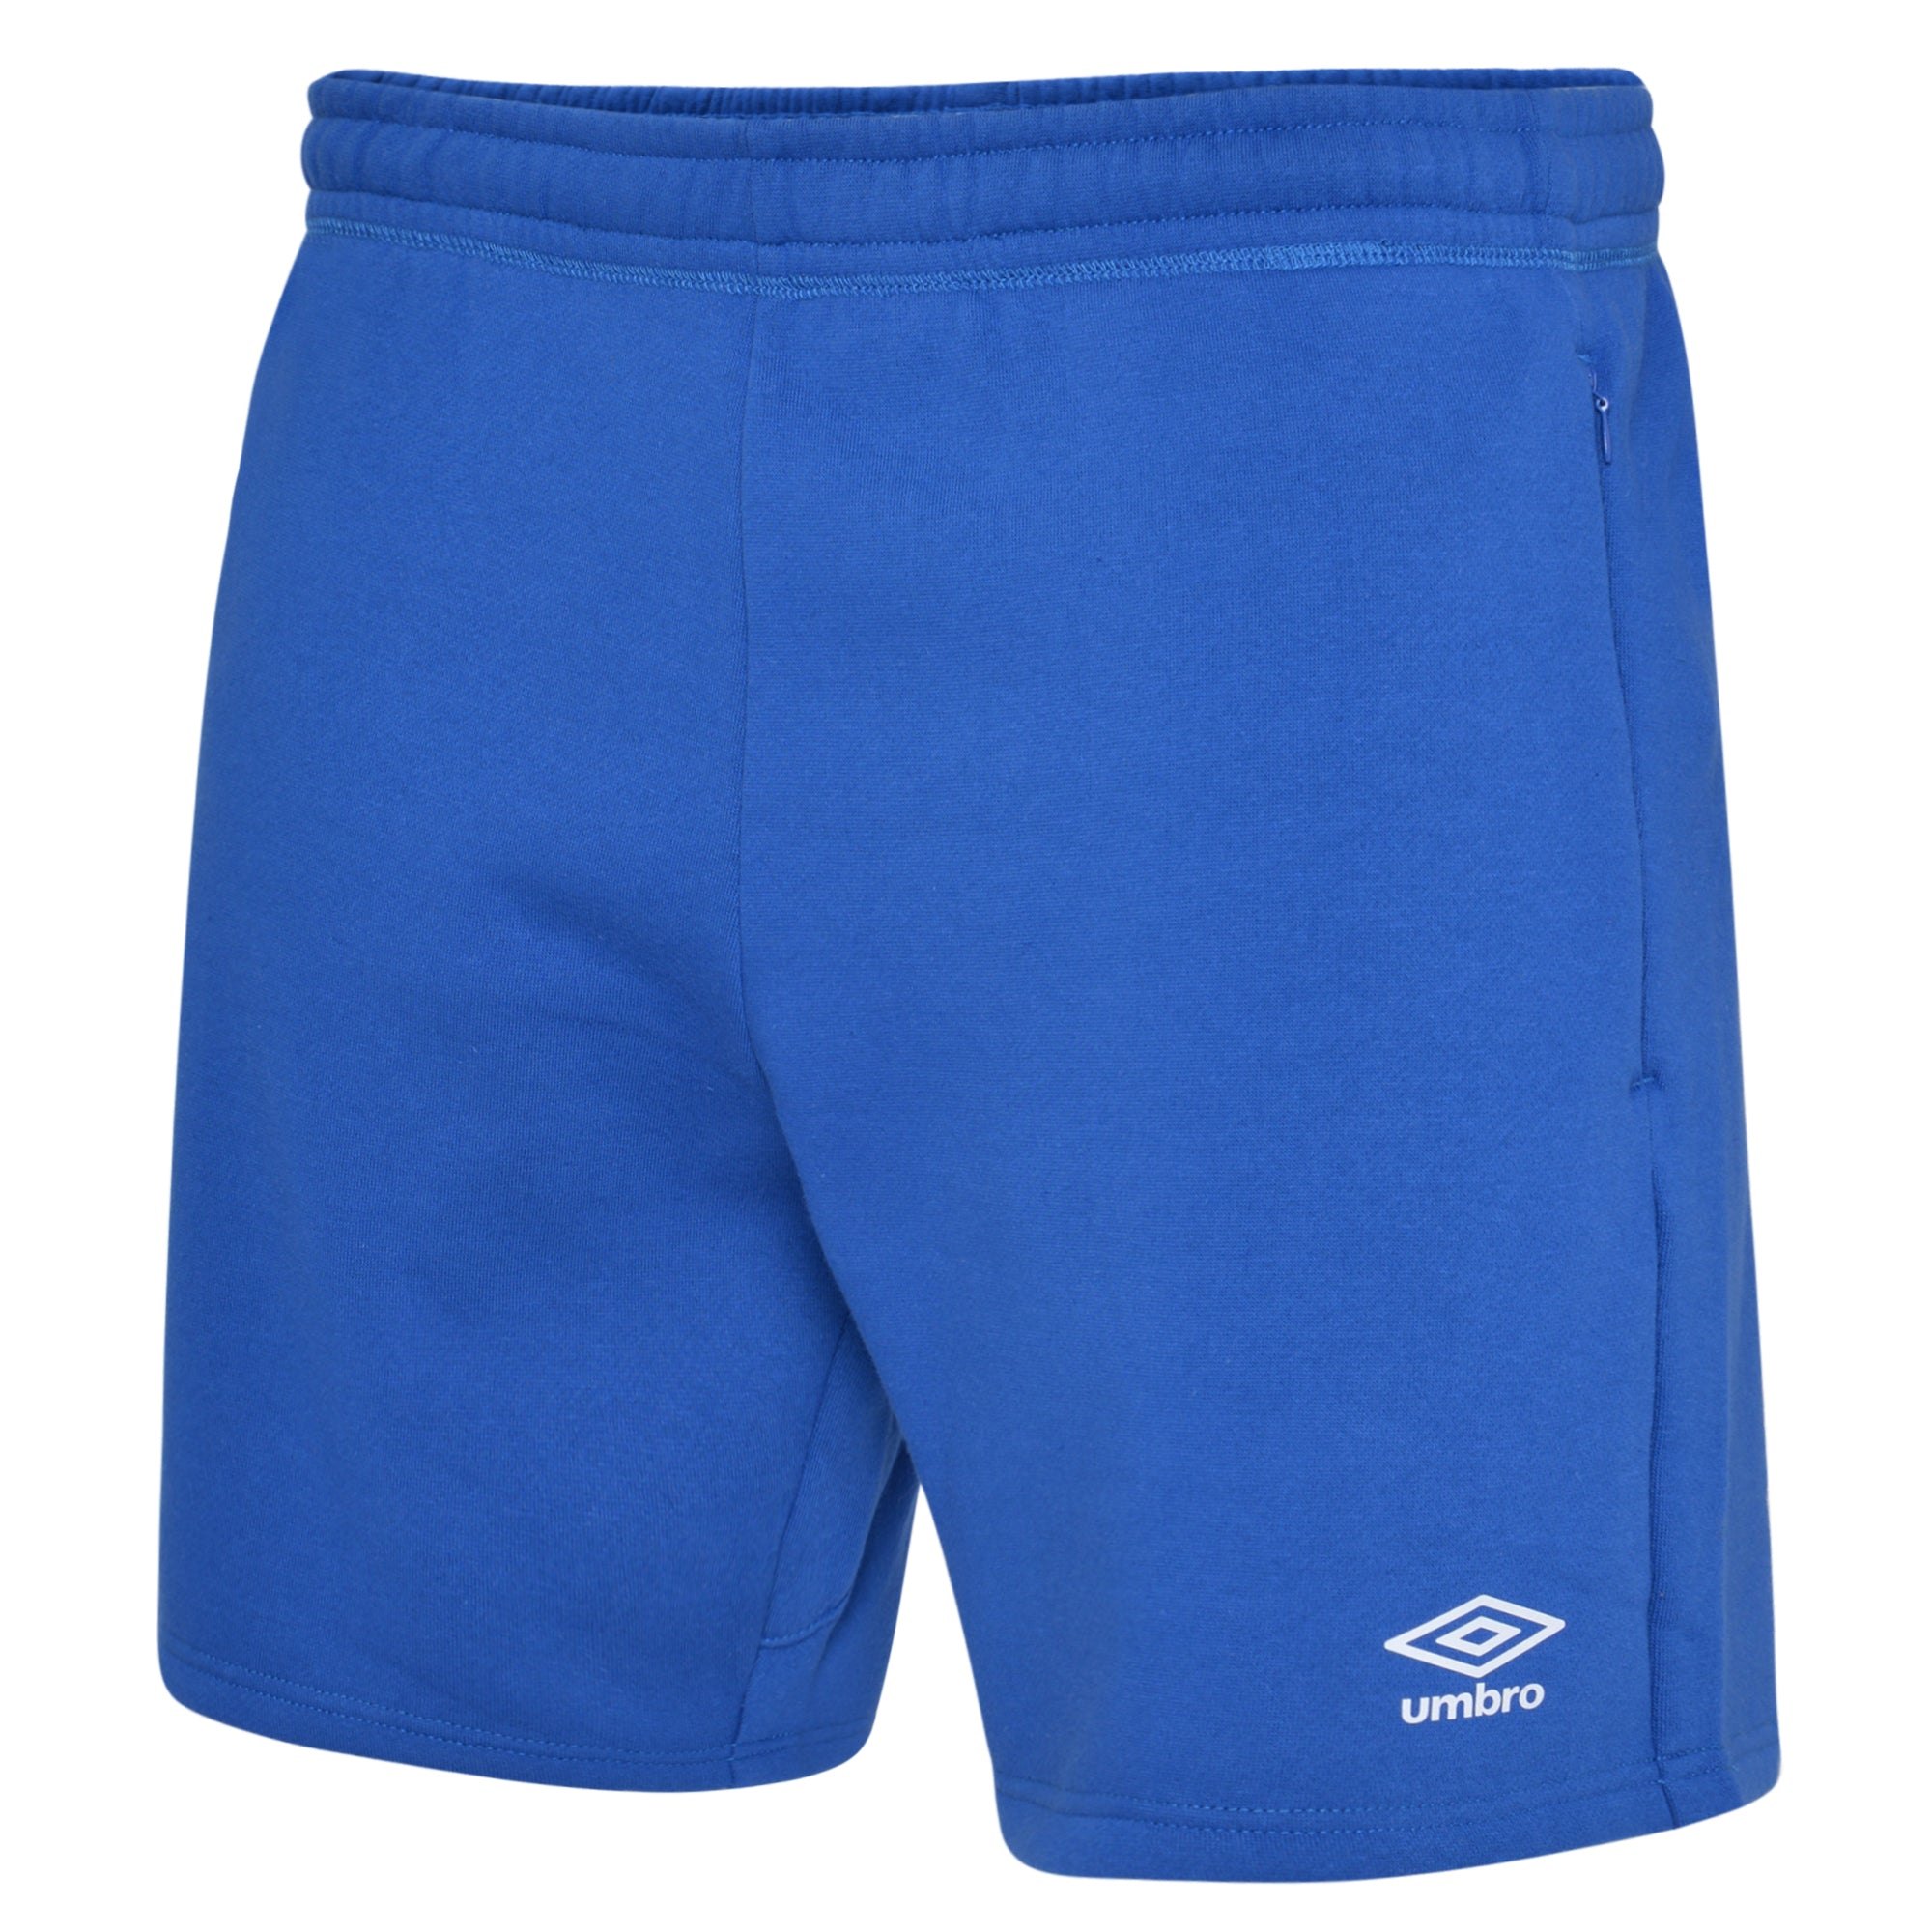 Umbro Club Leisure Jog Shorts - TW Royal/White